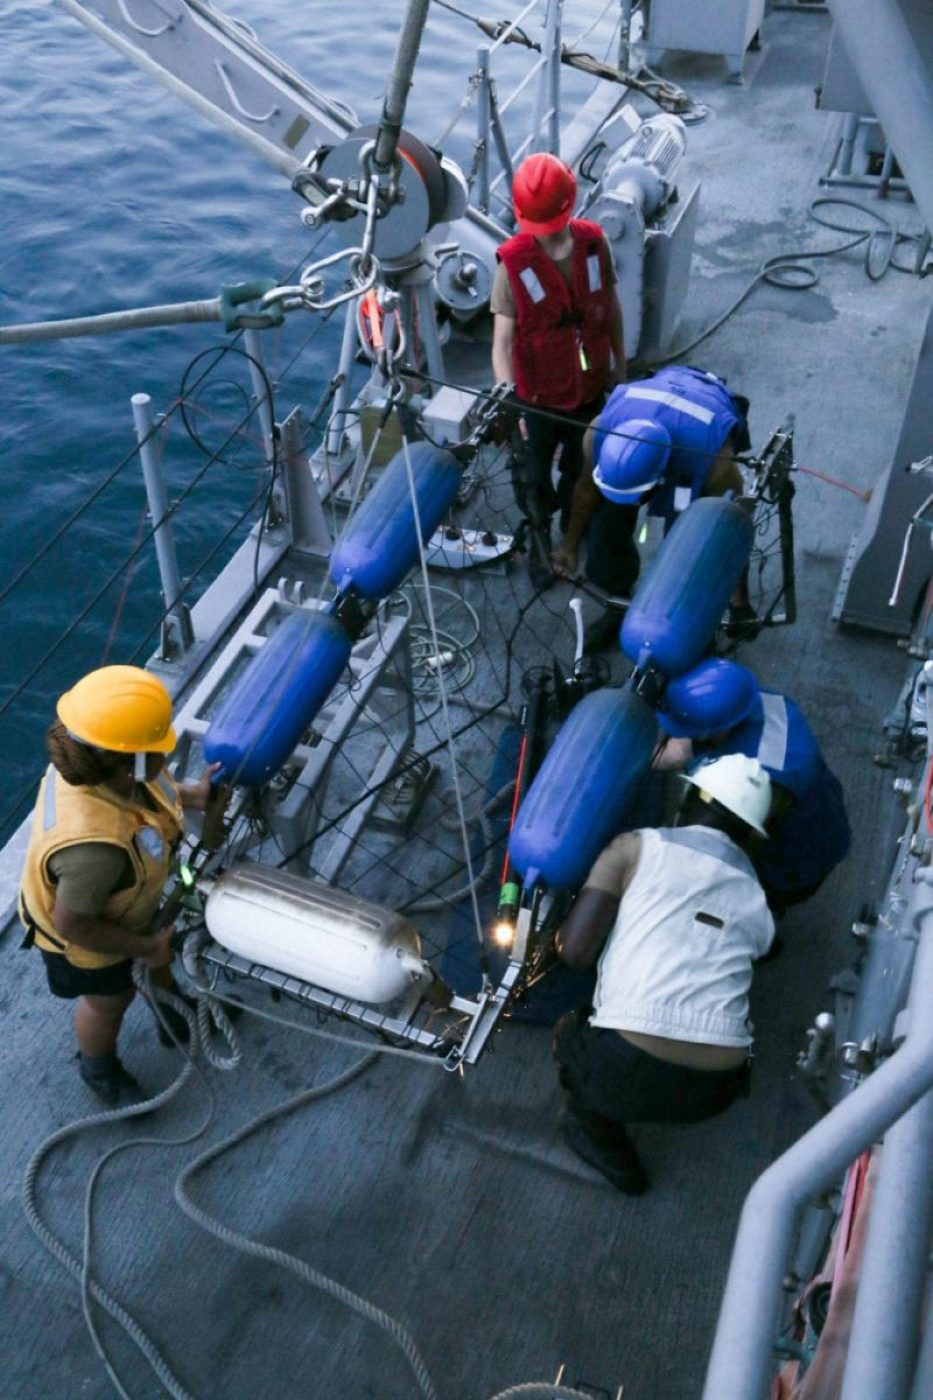 Sailors assigned to mine countermeasures ship USS Sentry (MCM 3) retrieve a SLQ-60 SeaFox mine neutralization system during exercise Artemis 21in the Arabian Gulf, April 25. (U.S. Army photo by Spc. Zion Thomas)